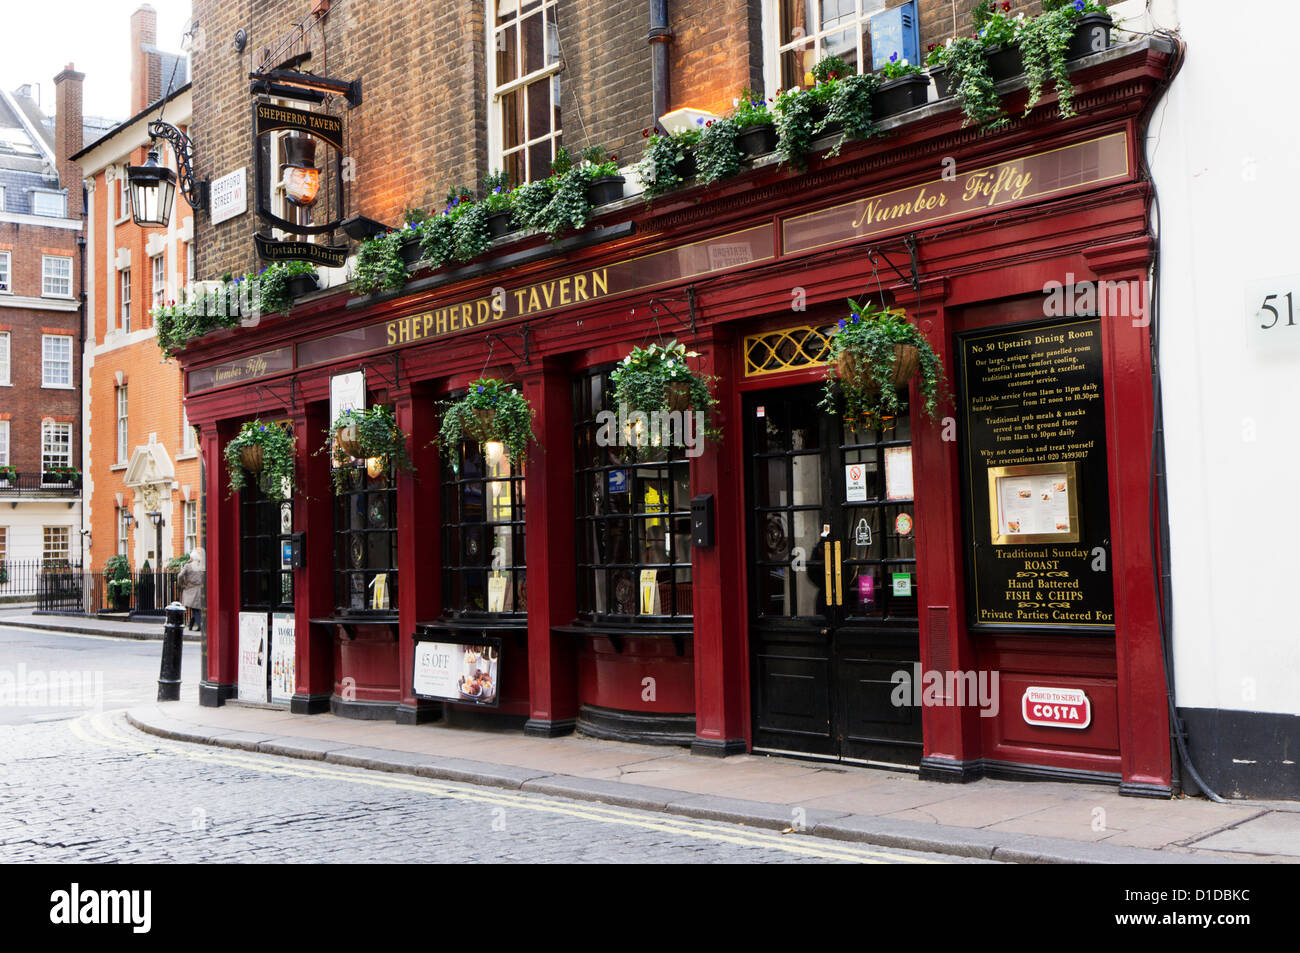 The Shepherds Tavern public house in the Shepherd Market area of Mayfair, London. - Stock Image